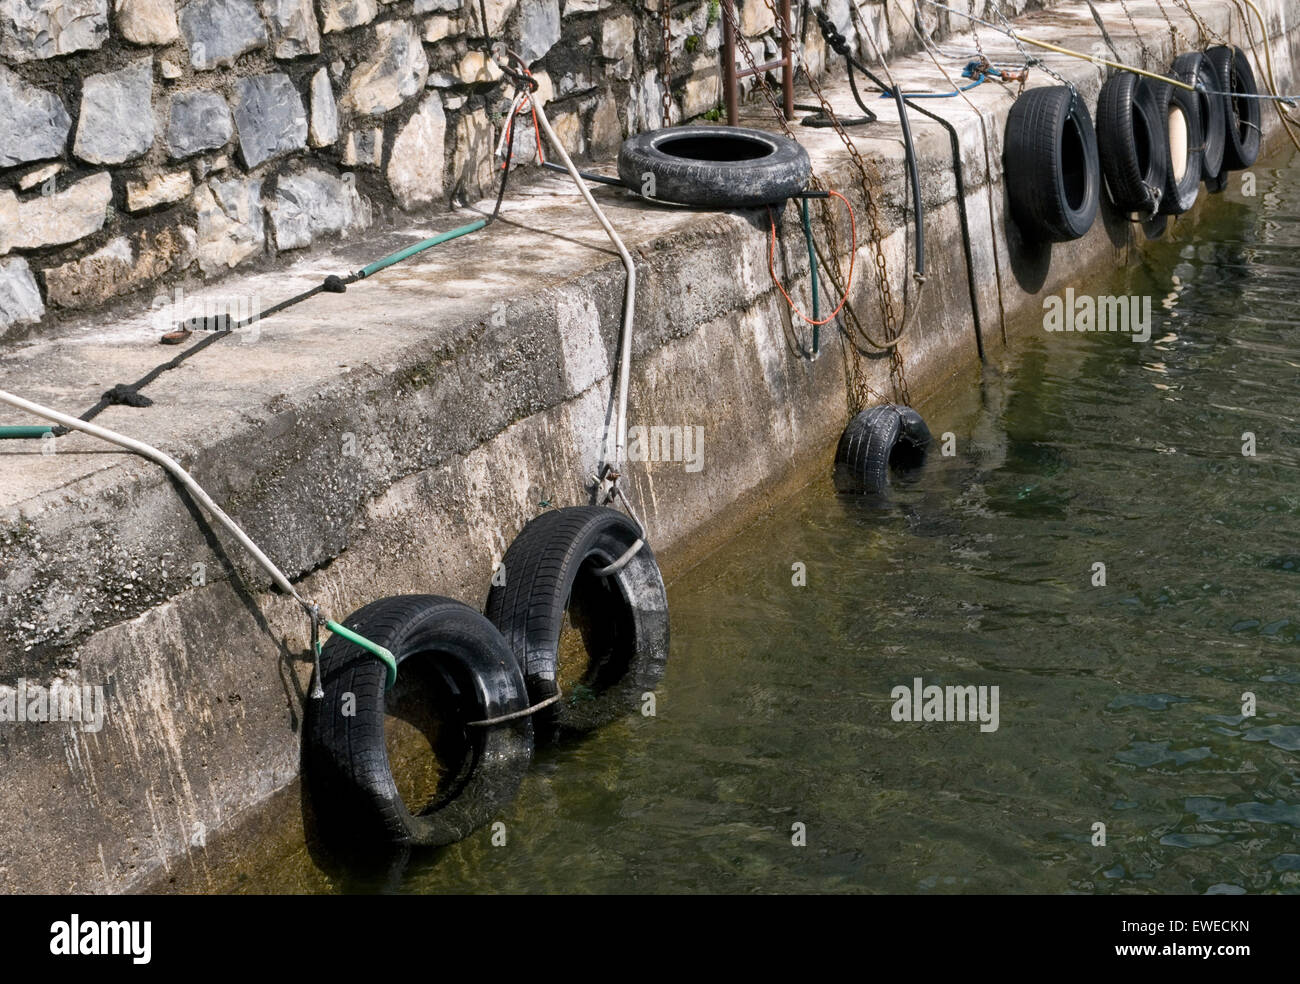 rubber tires used as marine bumpers against the docks - Stock Image